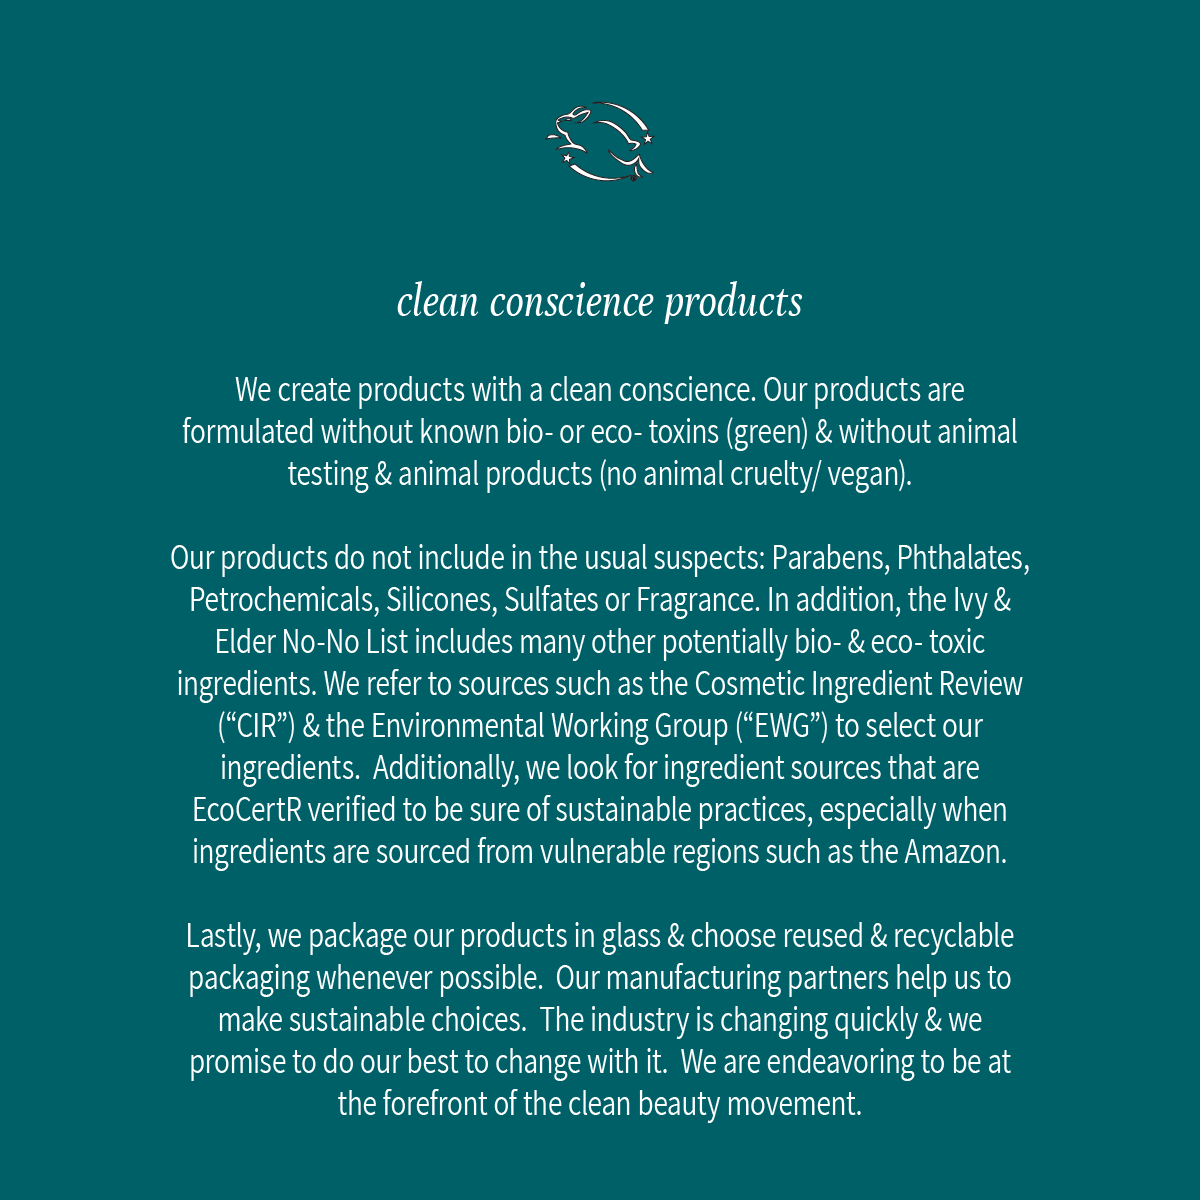 clean conscience products